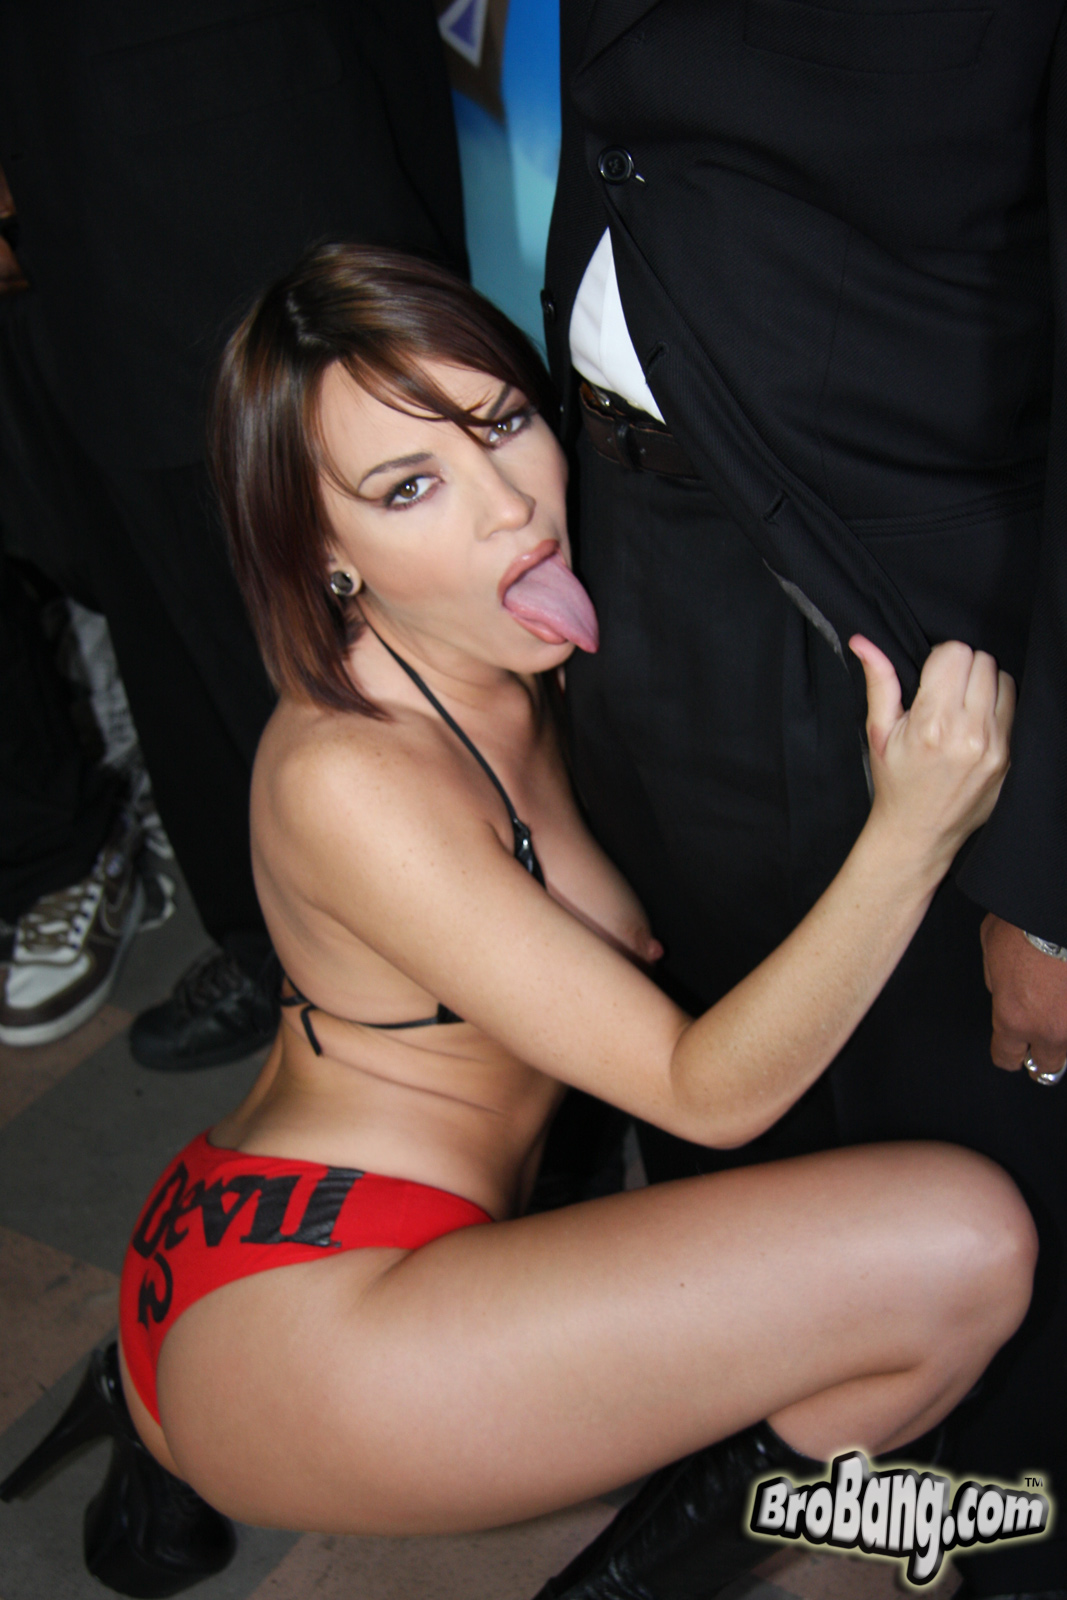 Free nasty lesbian pictures and videos